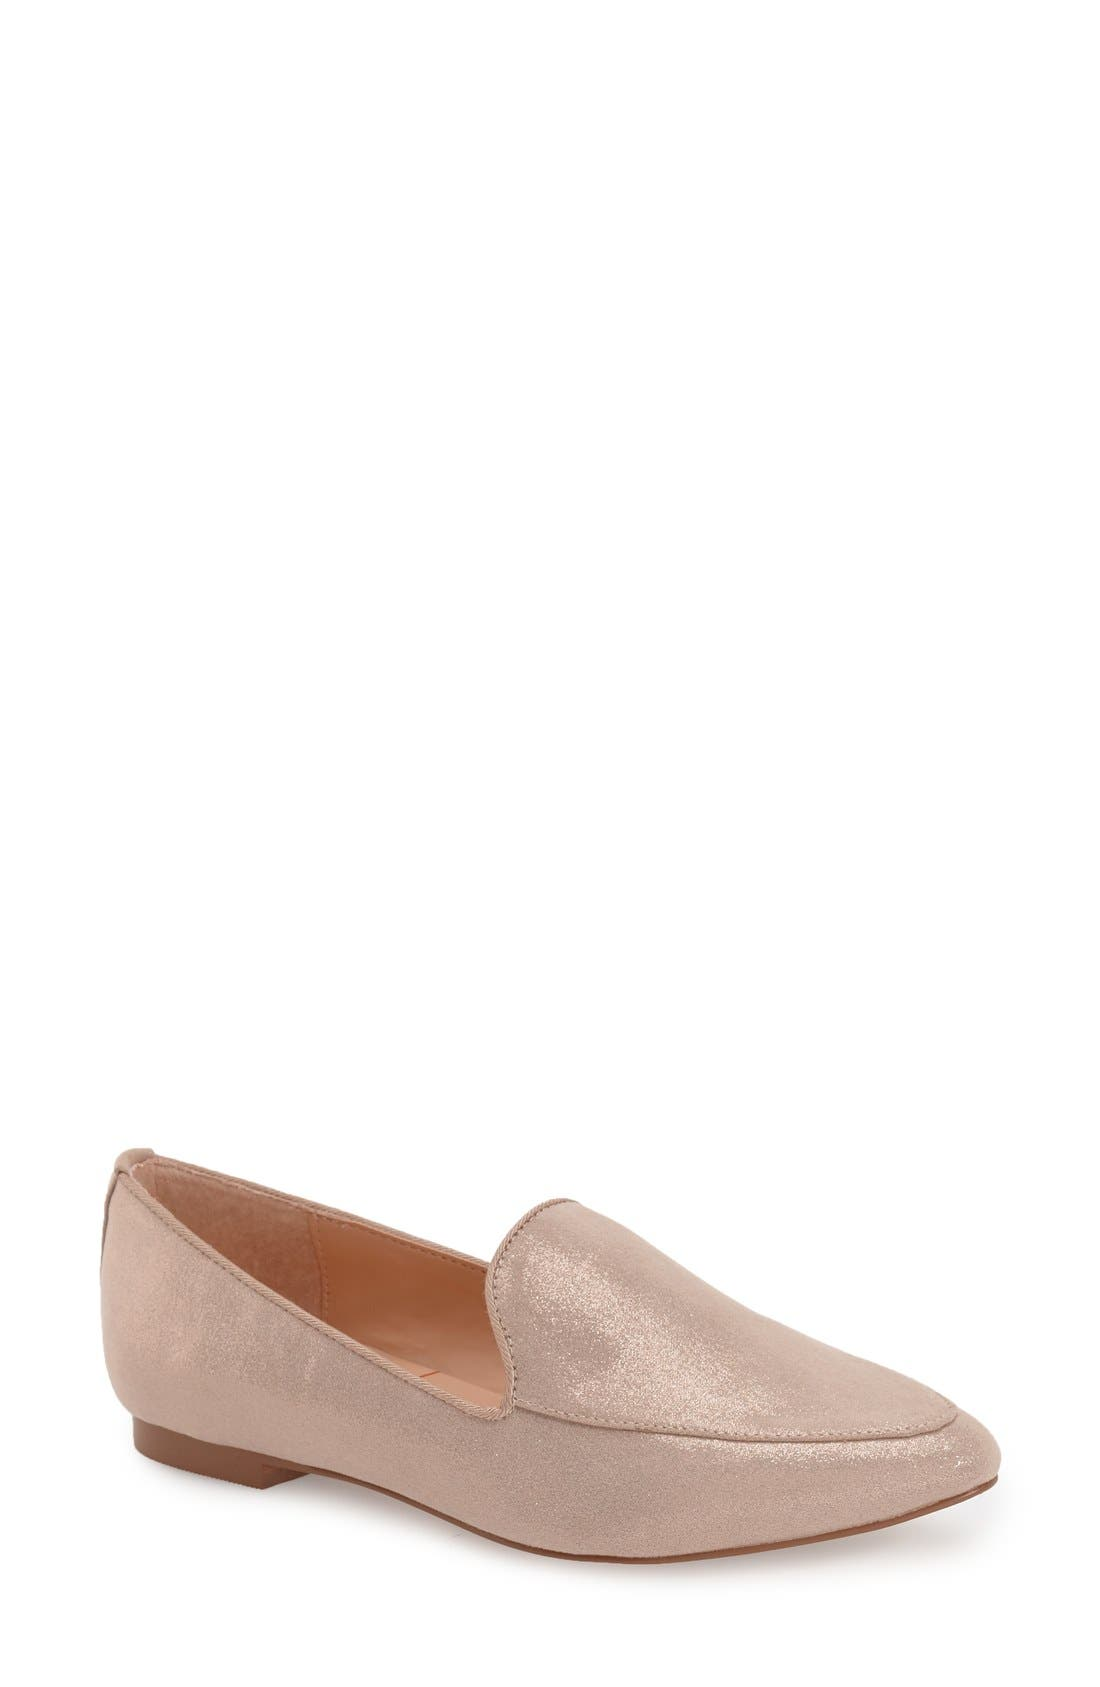 SOLE SOCIETY 'Sean' Pointy Toe Loafer, Main, color, 285